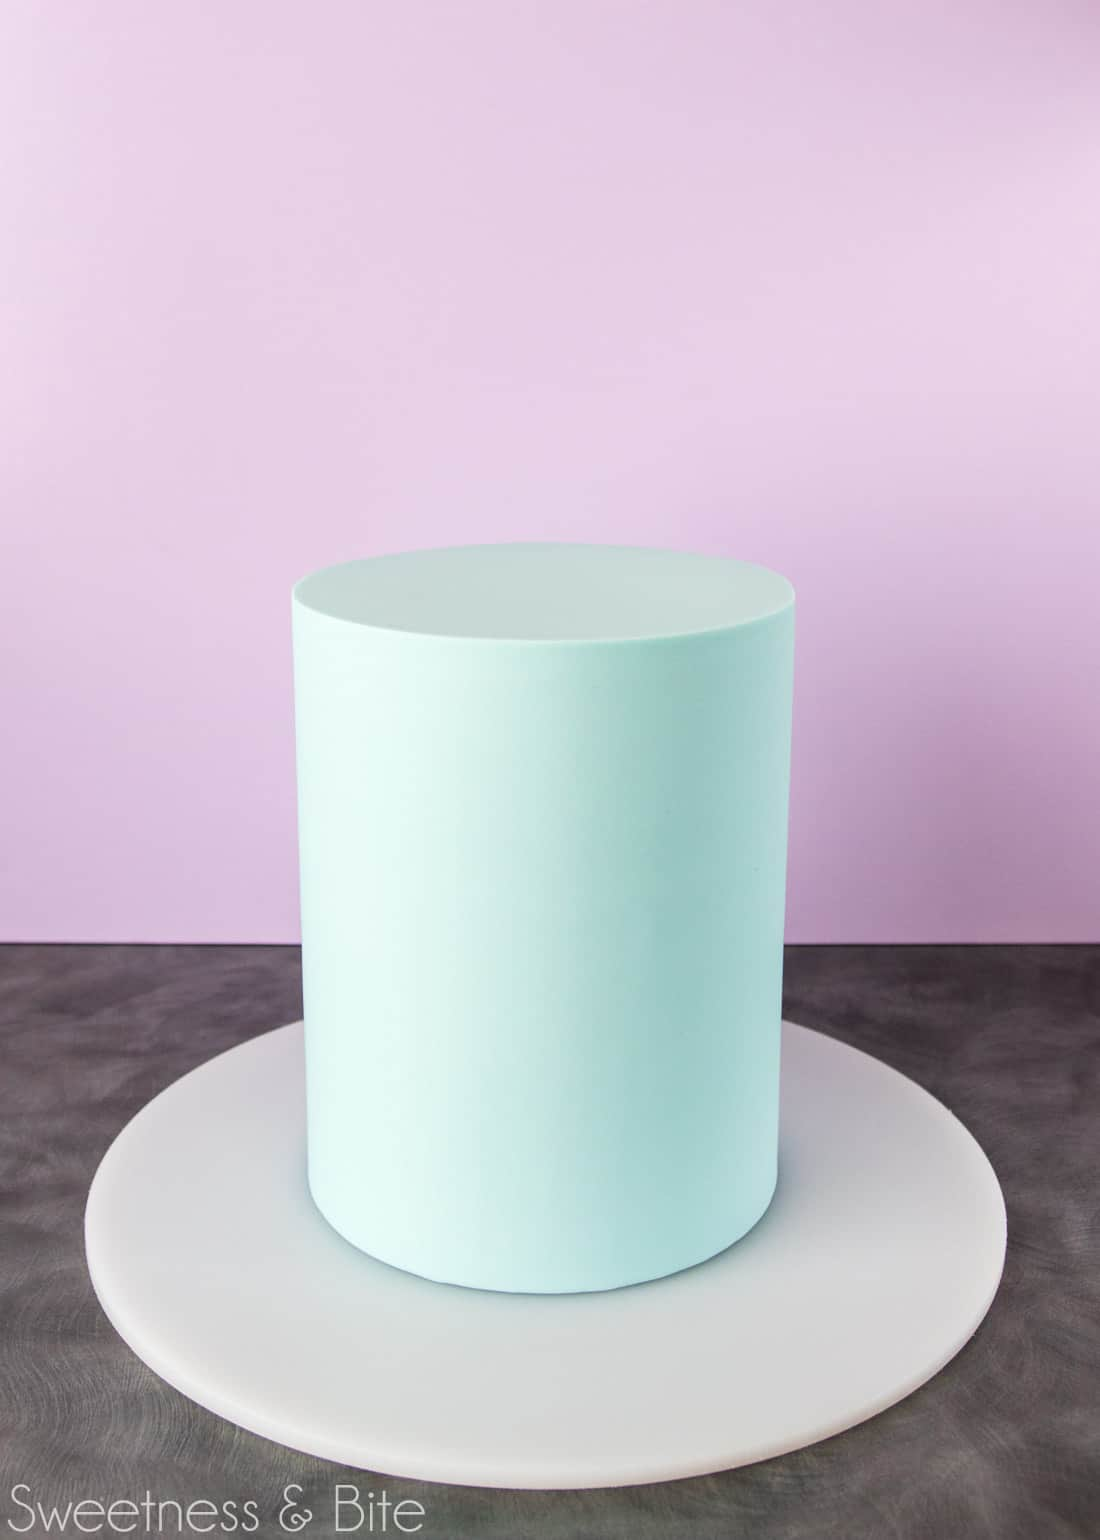 Tall, pale blue fondant covered cake, ready to be painted.